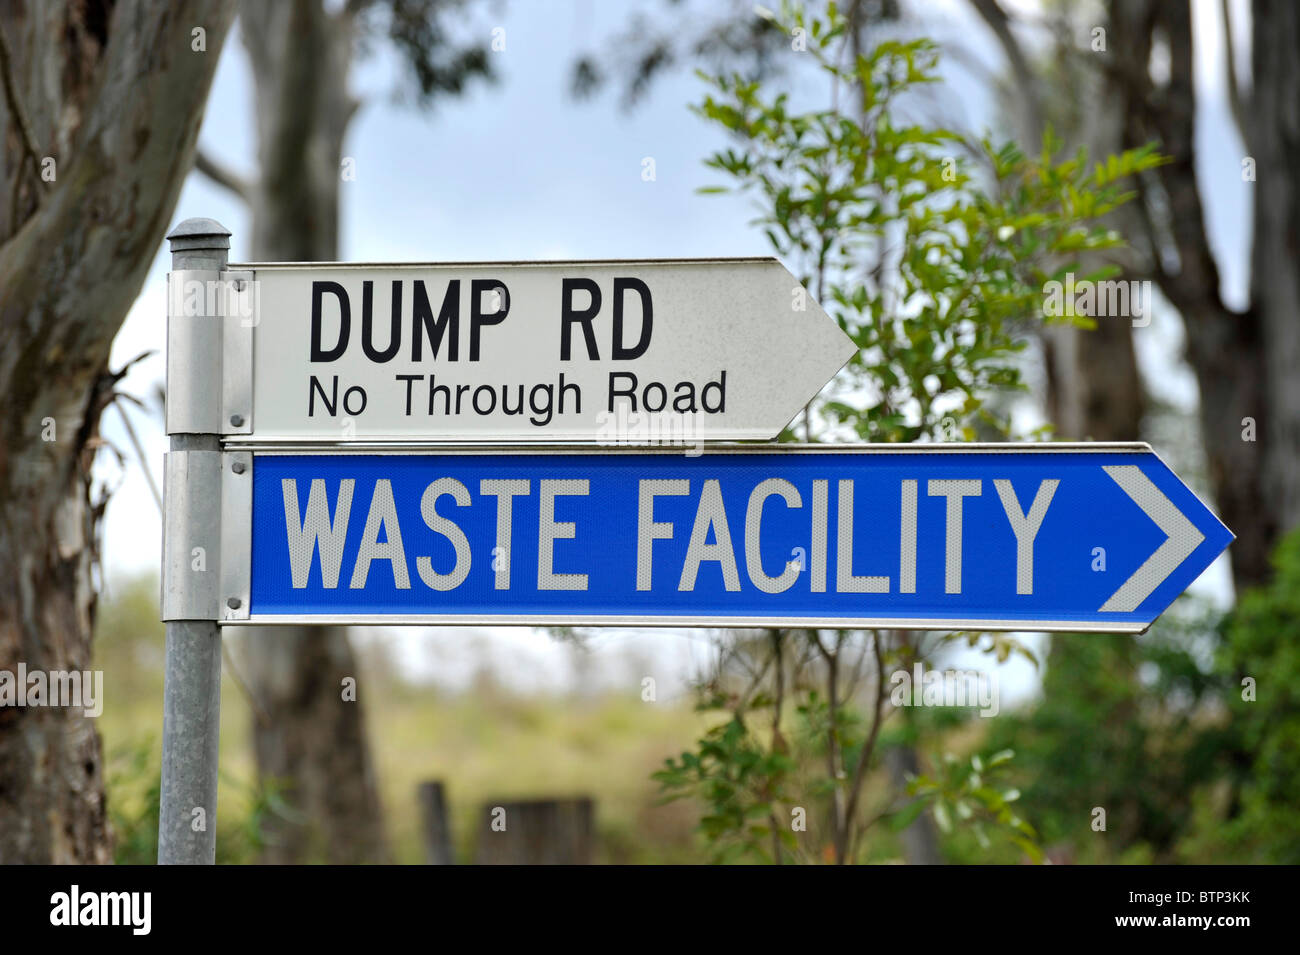 Waste Facility Dump Rd - Stock Image